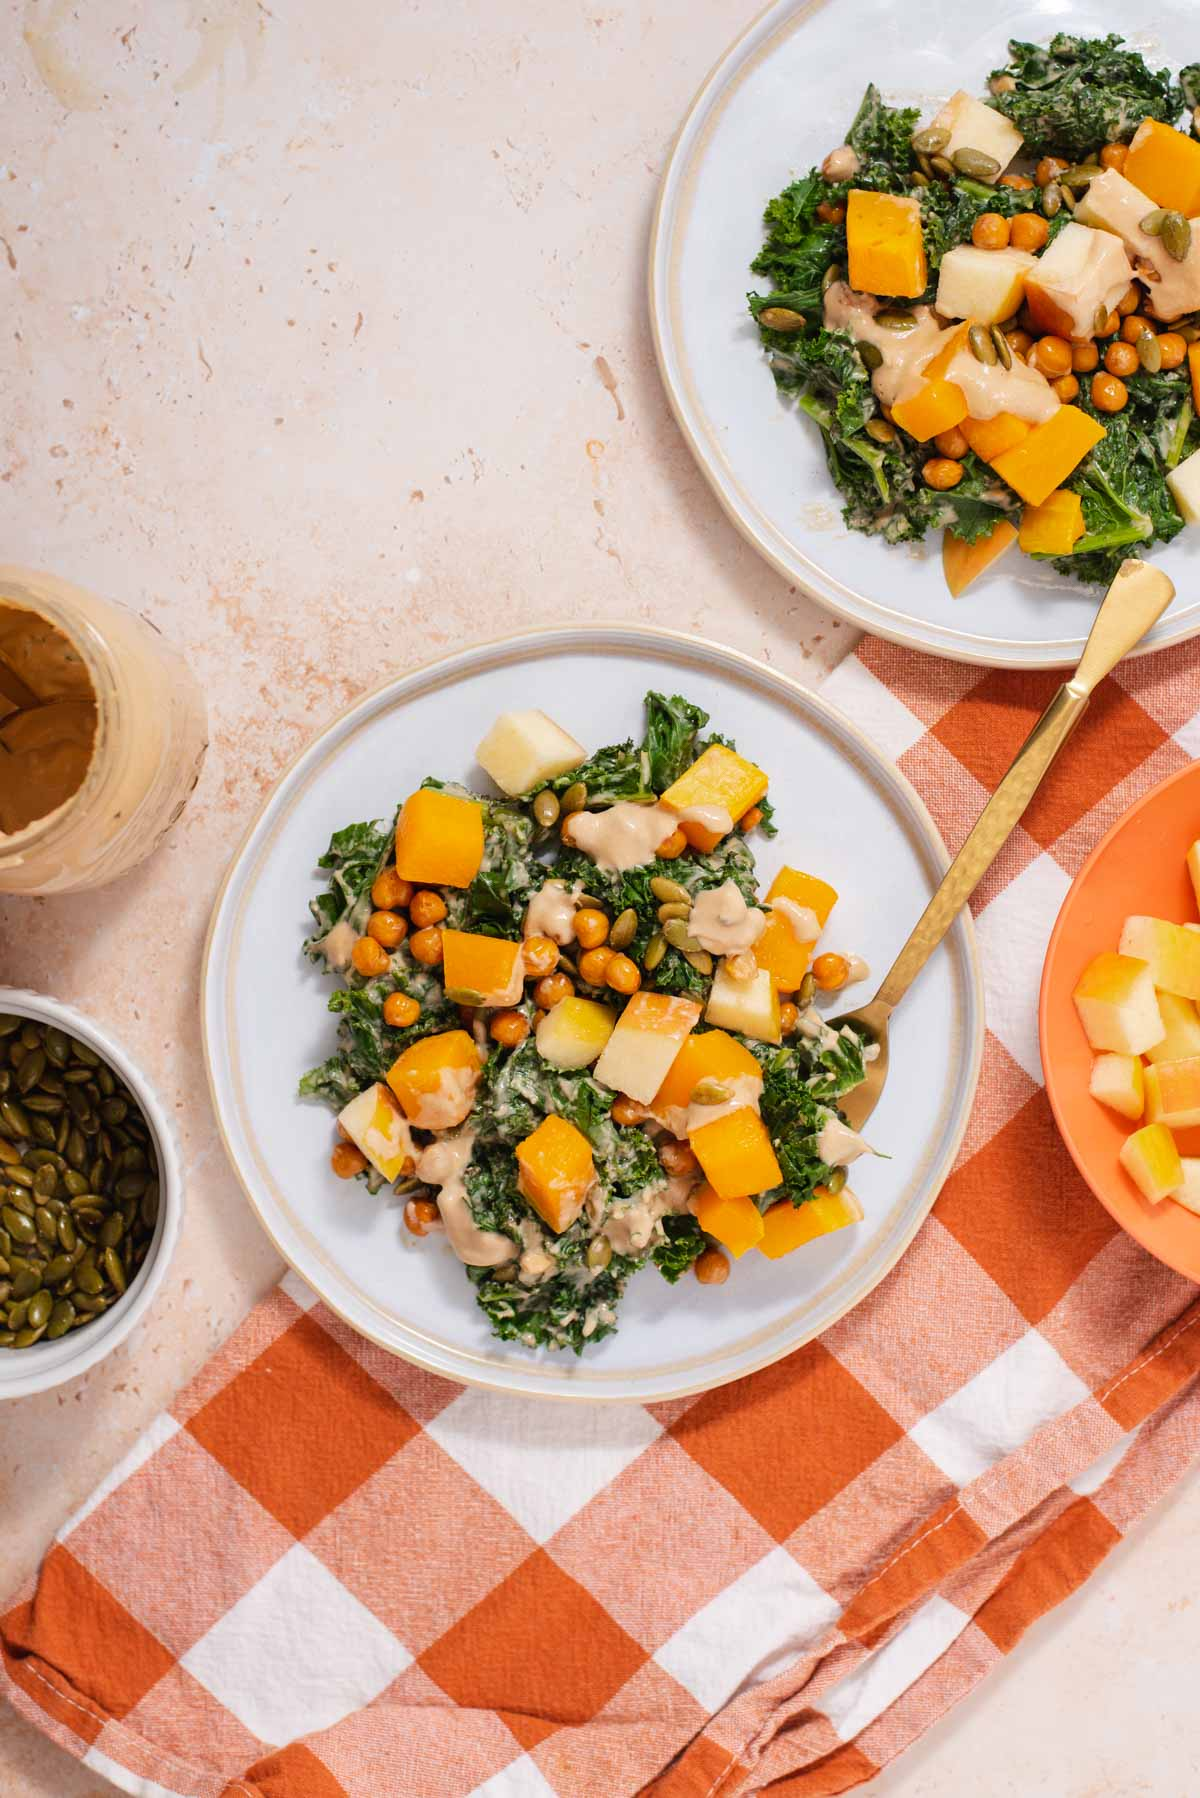 Overhead view of white plate with kale salad on an orange checked cloth